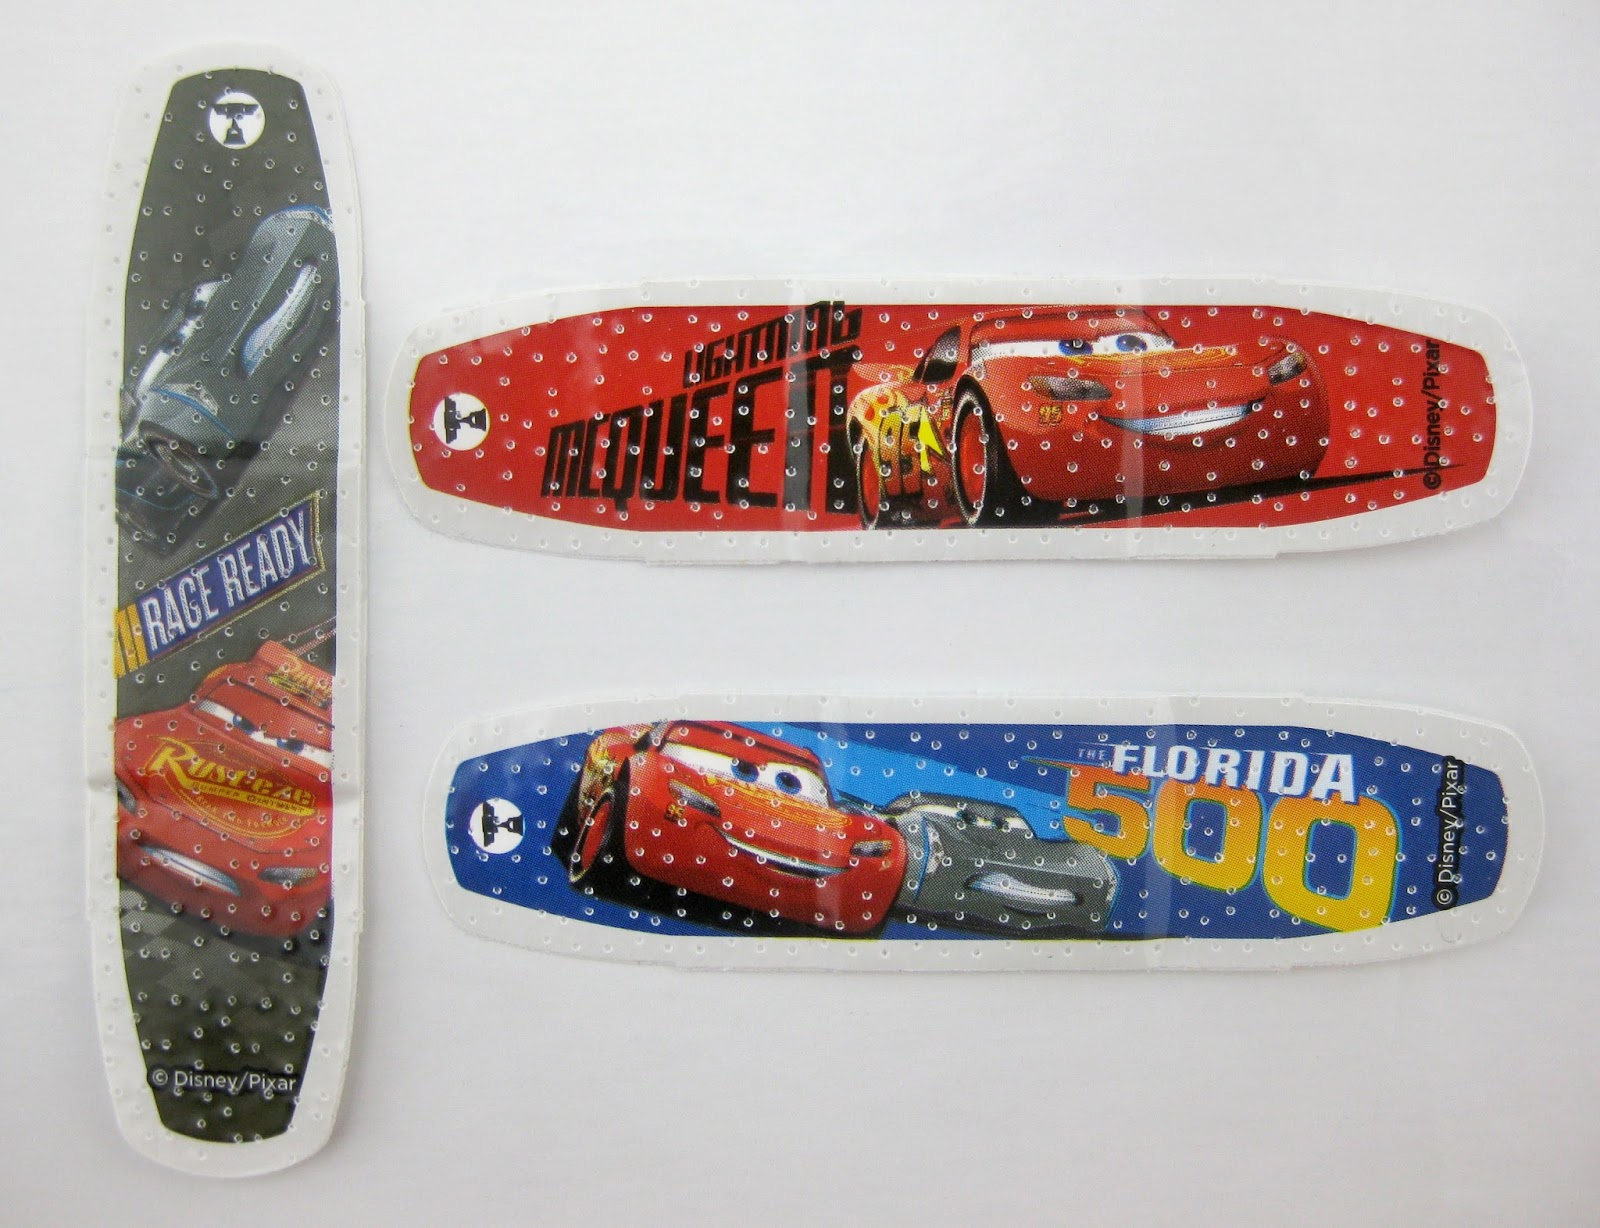 disney pixar Cars 3 Band-Aids